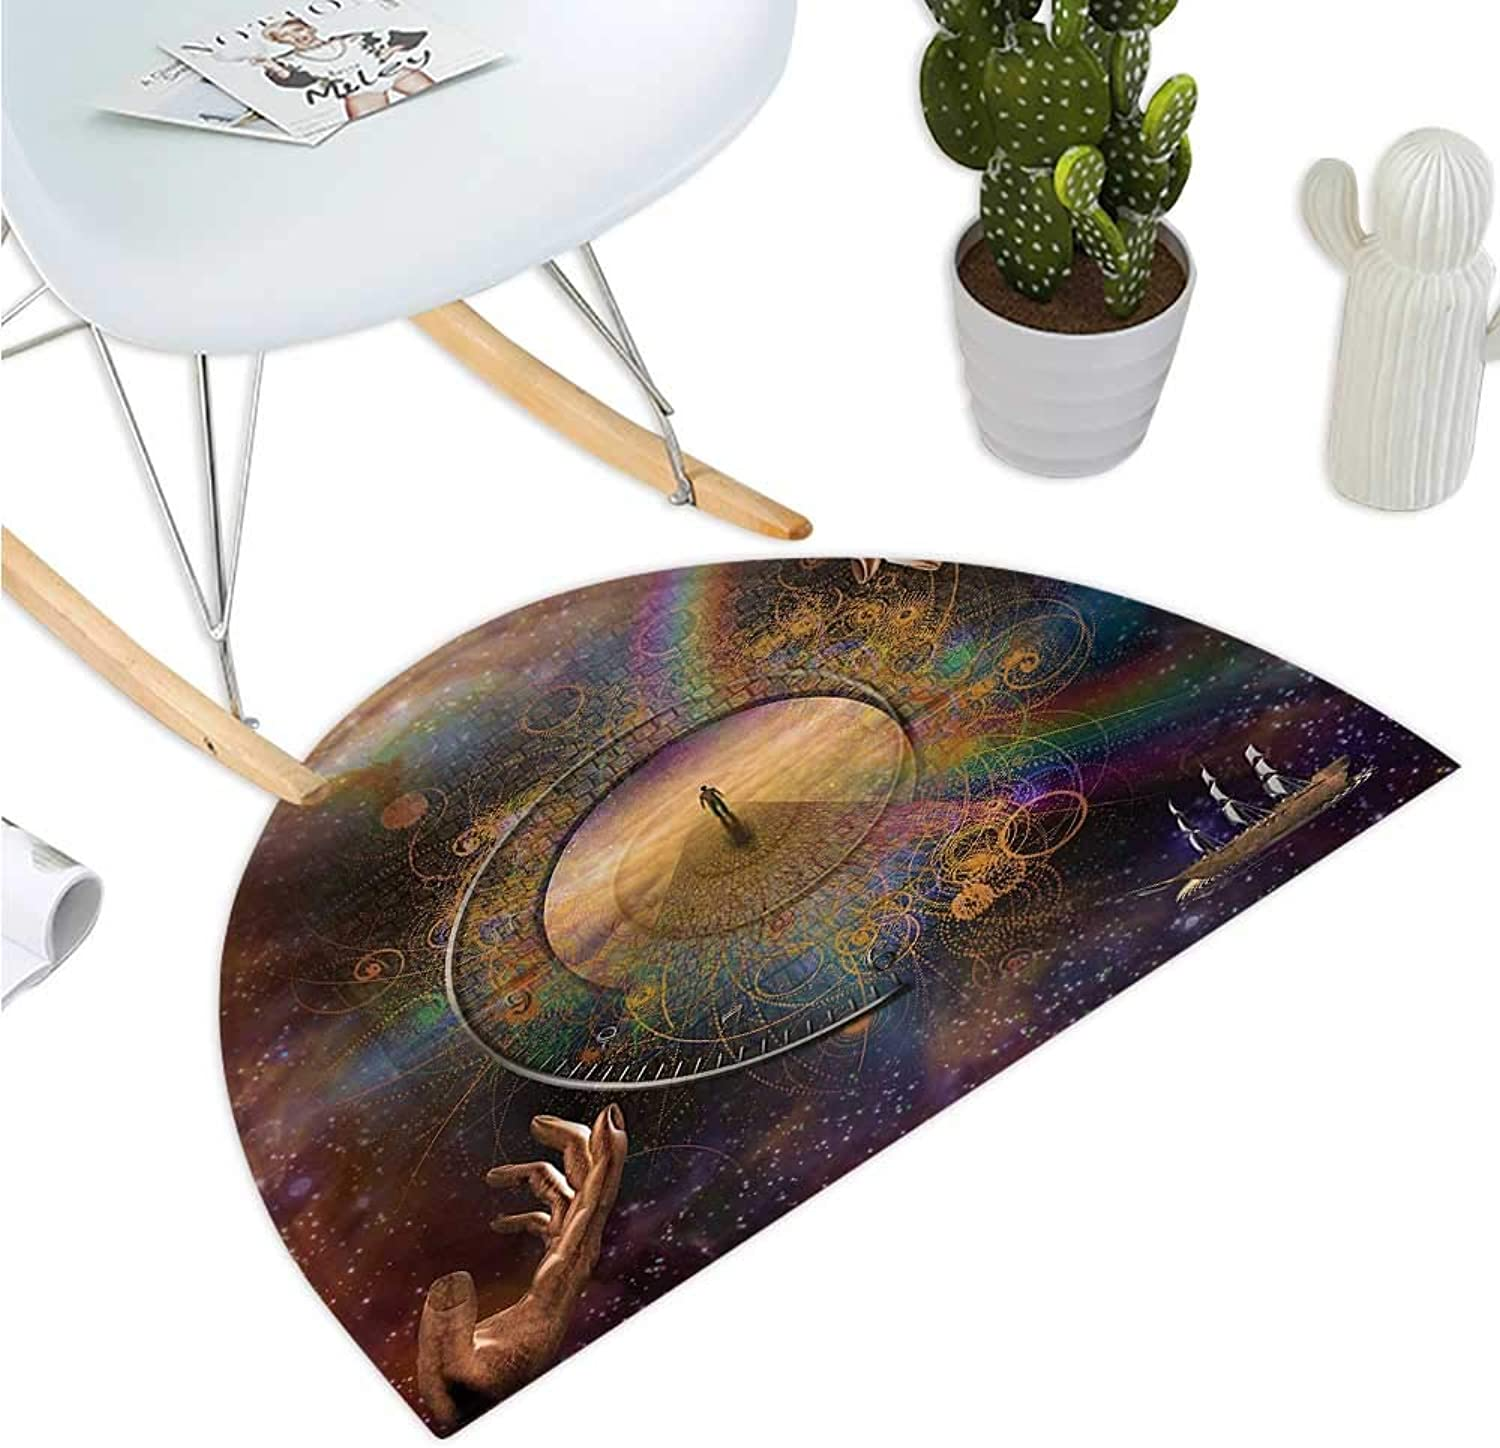 Magical Semicircular Cushion Double Exposure Outer Space Mixed with Earth Symbolic Eternity Details Artsy Print Entry Door Mat H 51.1  xD 76.7  Purple Tan